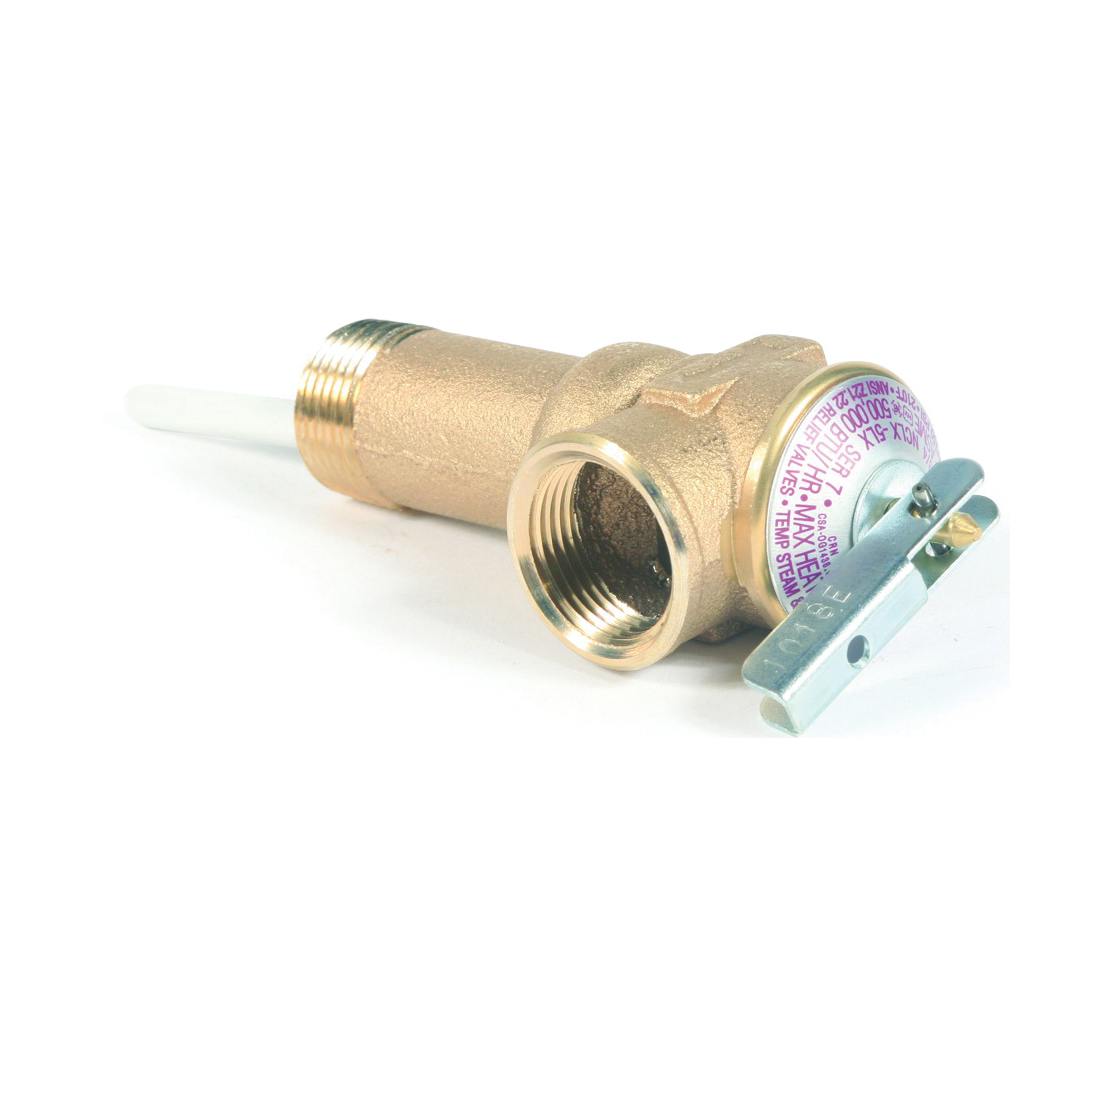 Picture of CAMCO 10493 Relief Valve, 3/4 in, Brass Body